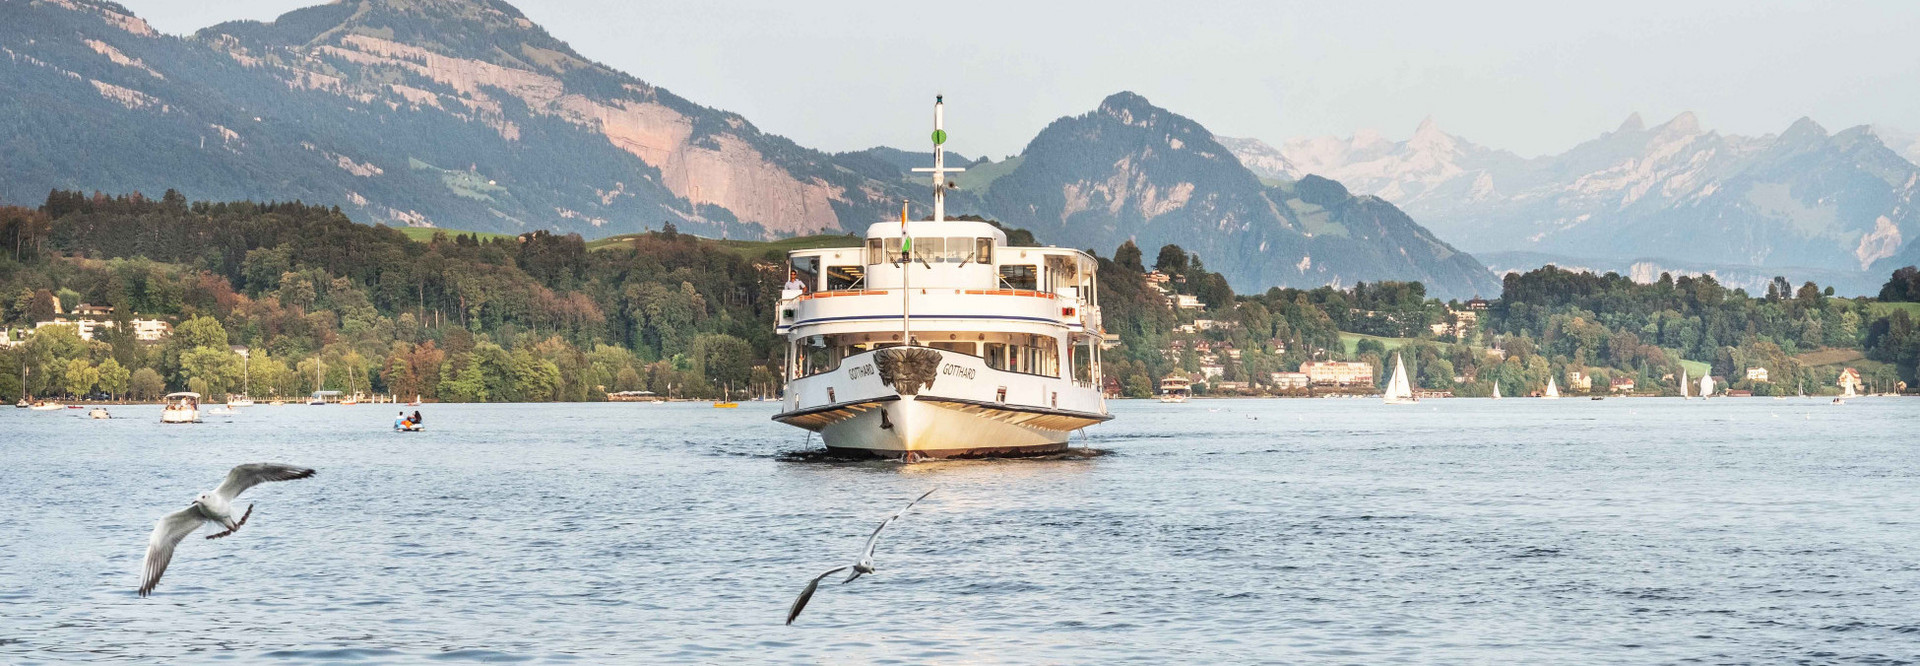 The motor boat Gotthard on its after-work cruise on Lake Lucerne.